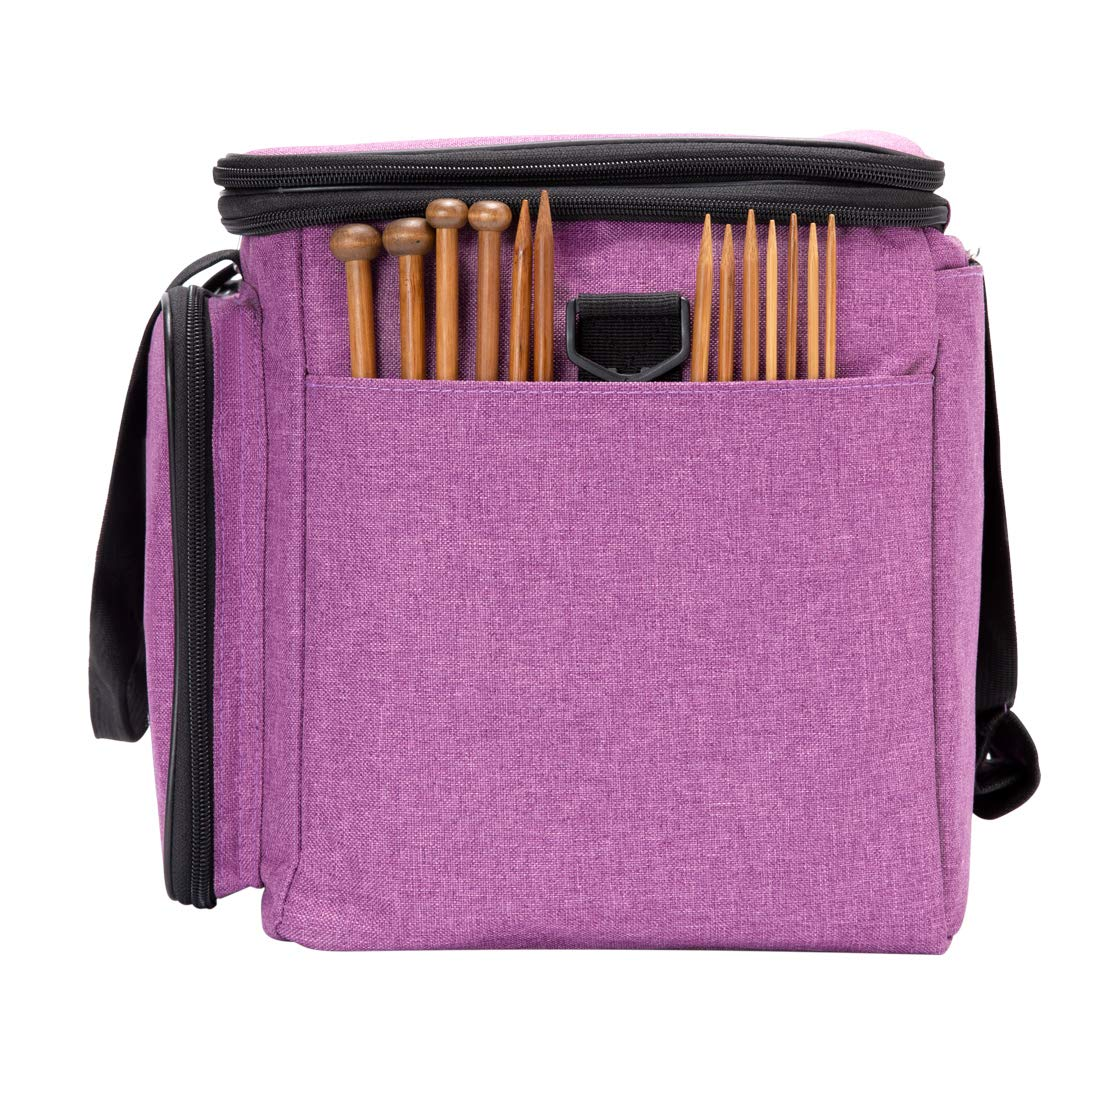 BENGDA Knitting Bags and Totes,Crochet Yarn Organizer with Inner Divider for Knitting Needles,Project and Supplies,Easy to Carry, High Capacity (Purple with Cover) by BENGDA (Image #4)